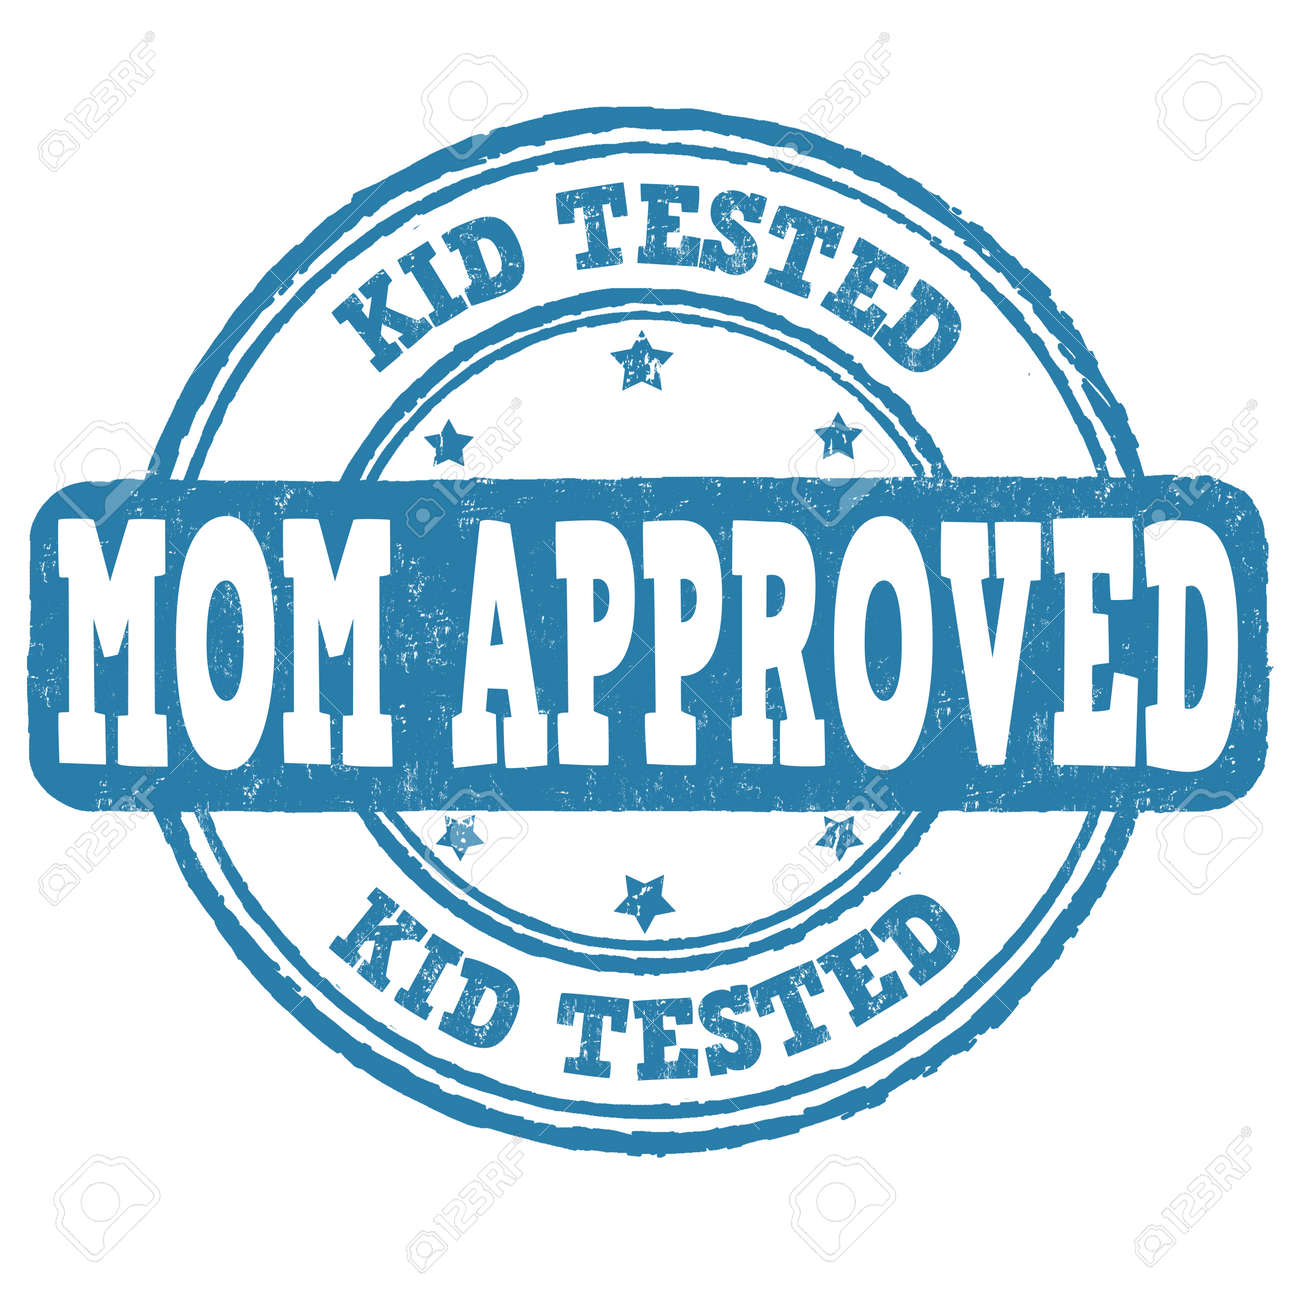 Kid Tested Mom Approved Grunge Rubber Stamp On White Background Vector Illustration Stock